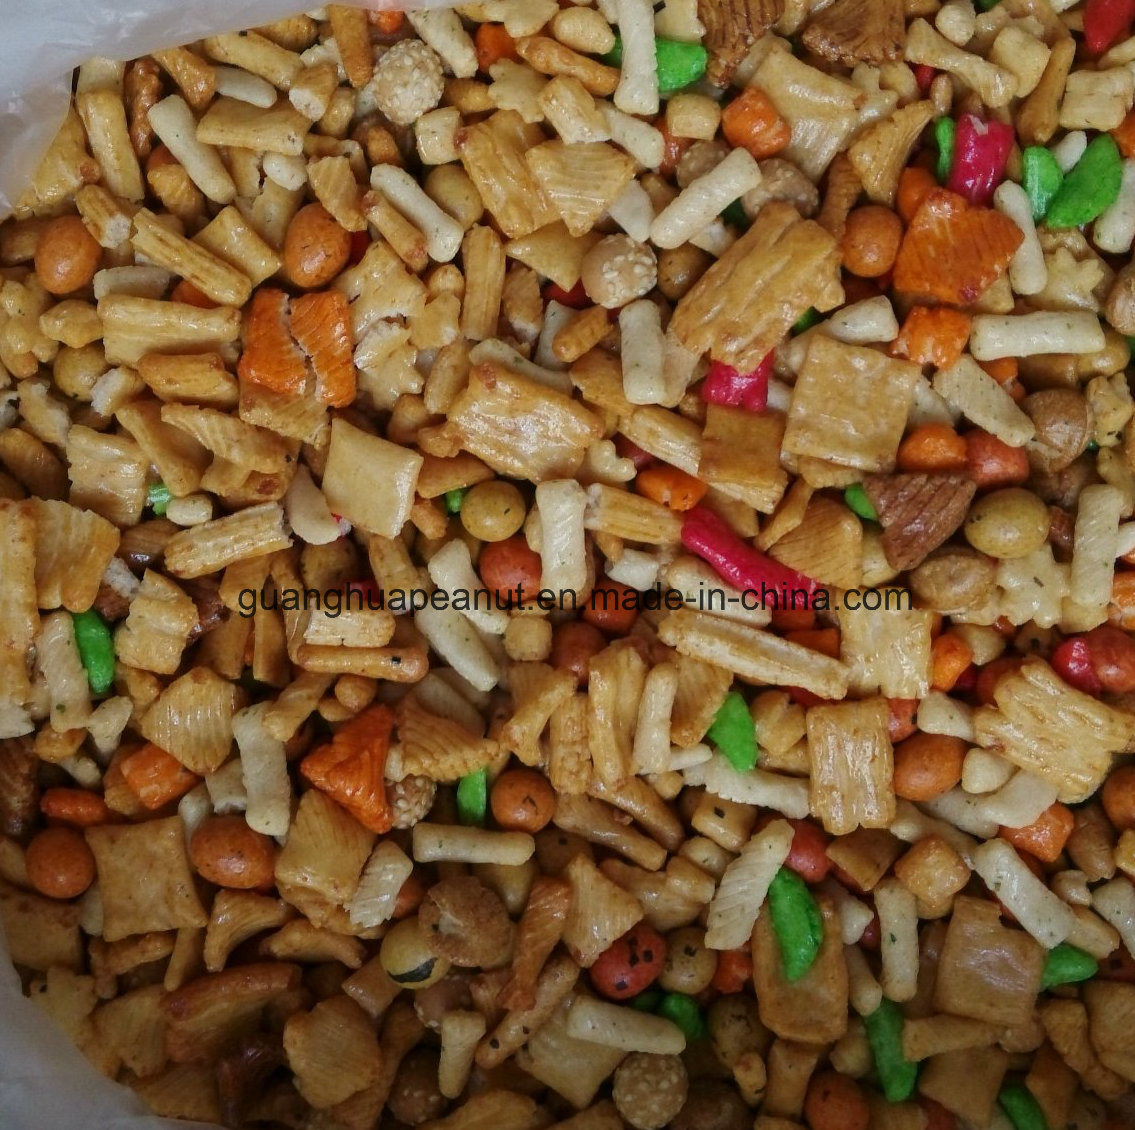 Rice Crackers From Shandong Guanghua